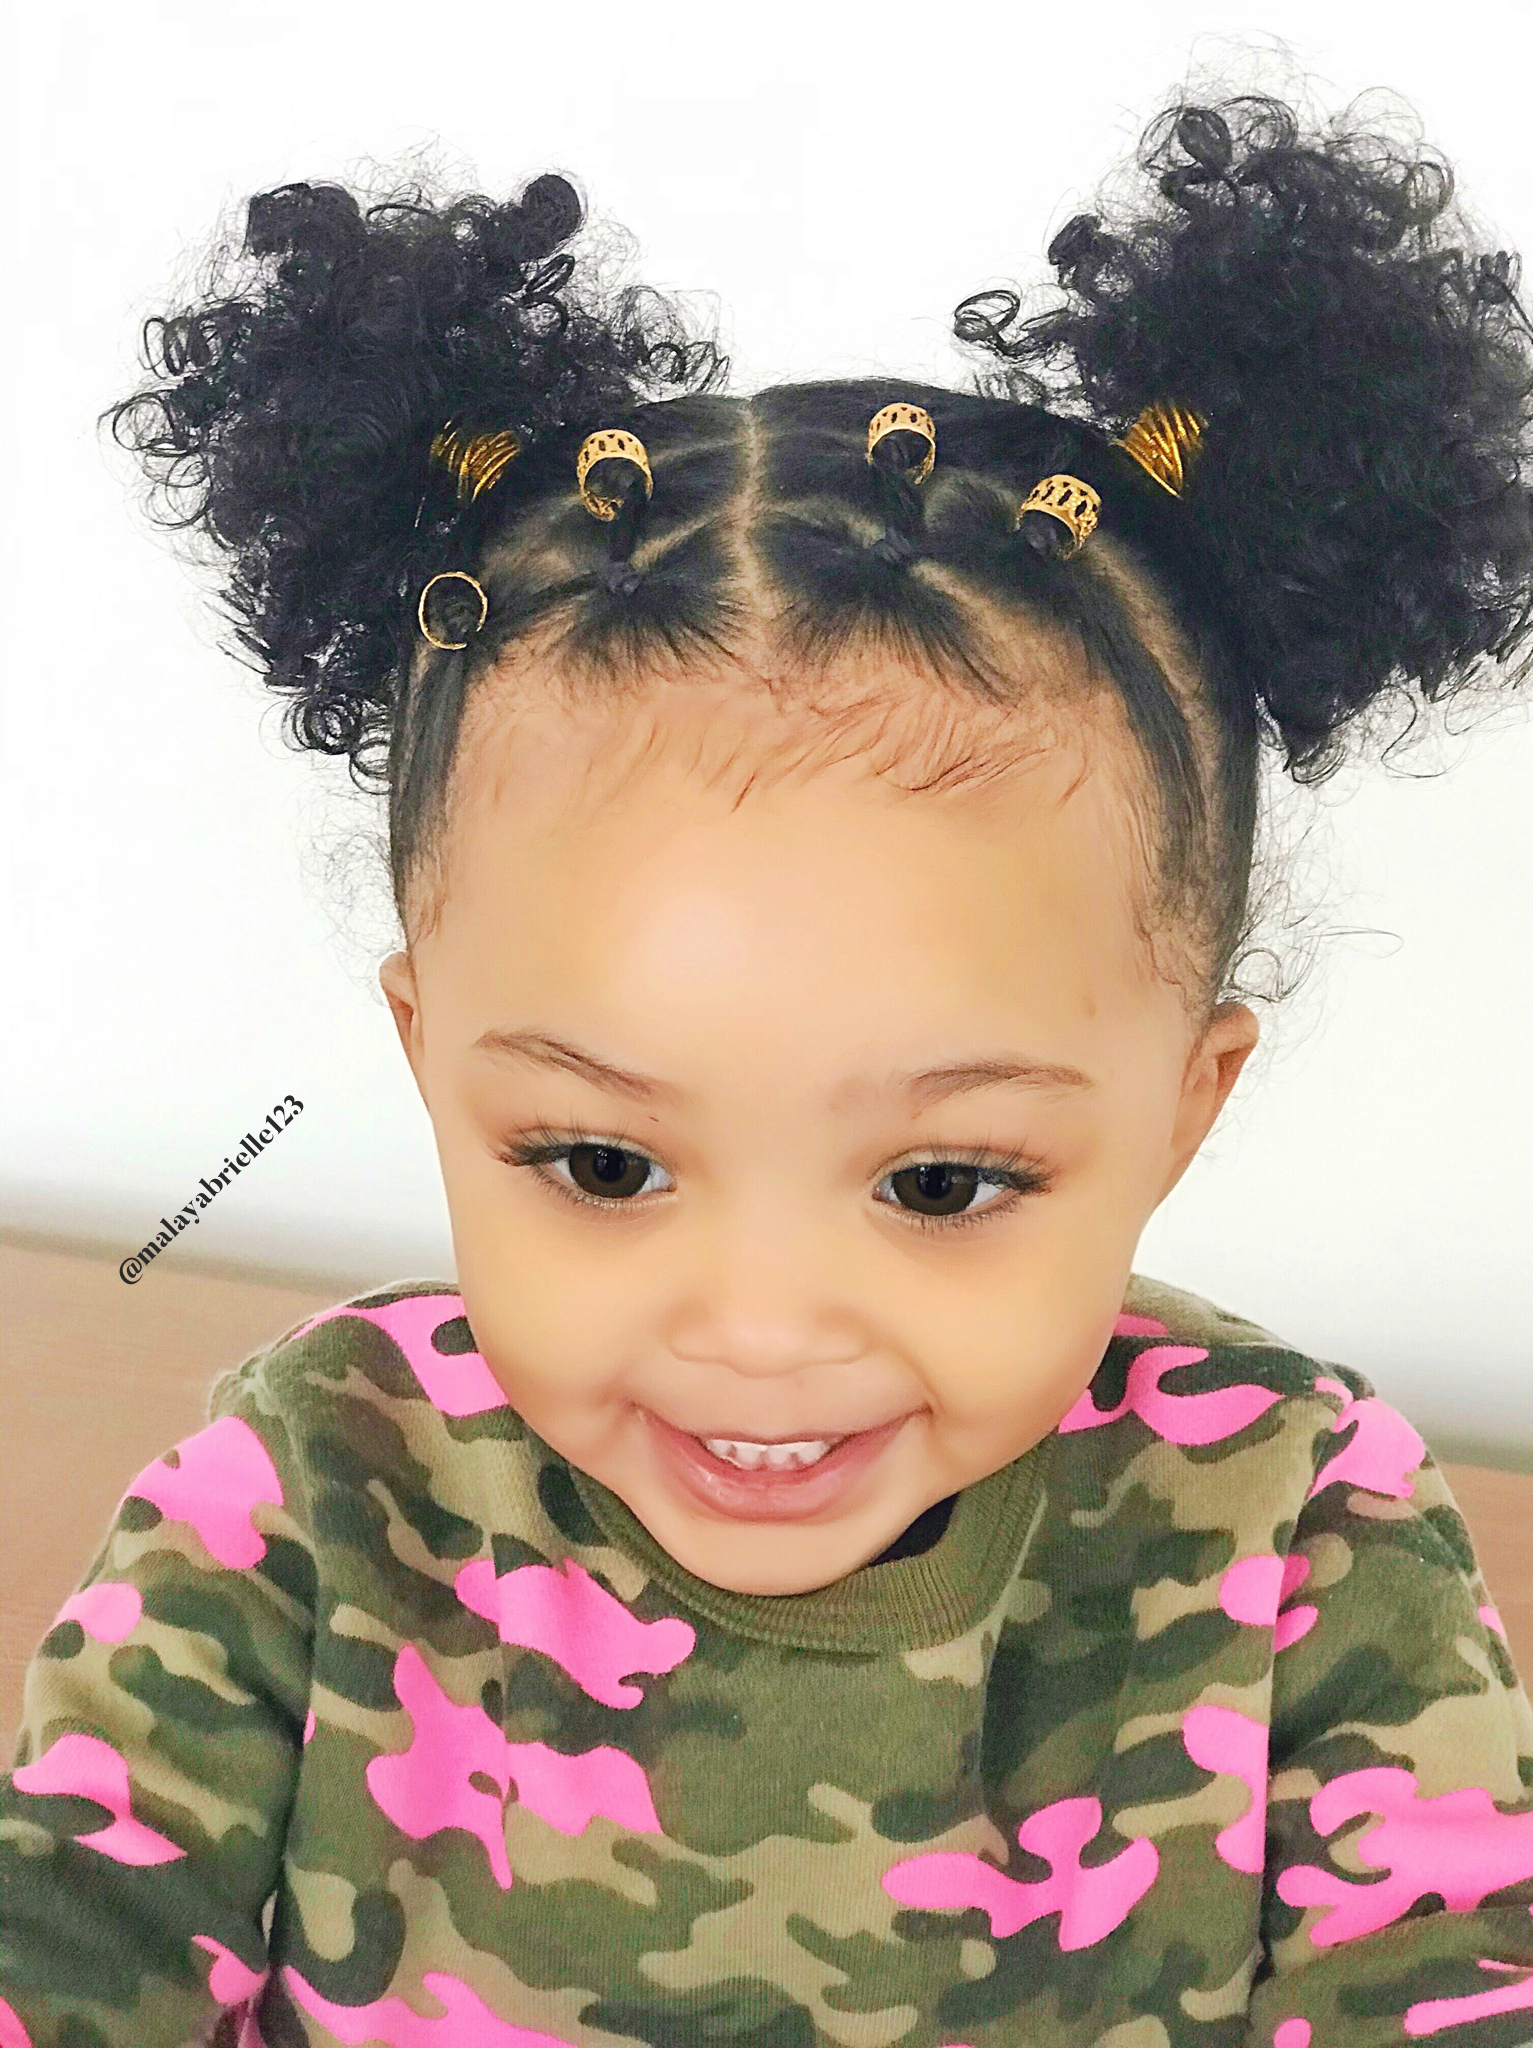 Hairstyle ideas   Baby girl hair, Toddler hairstyles girl, Baby ...